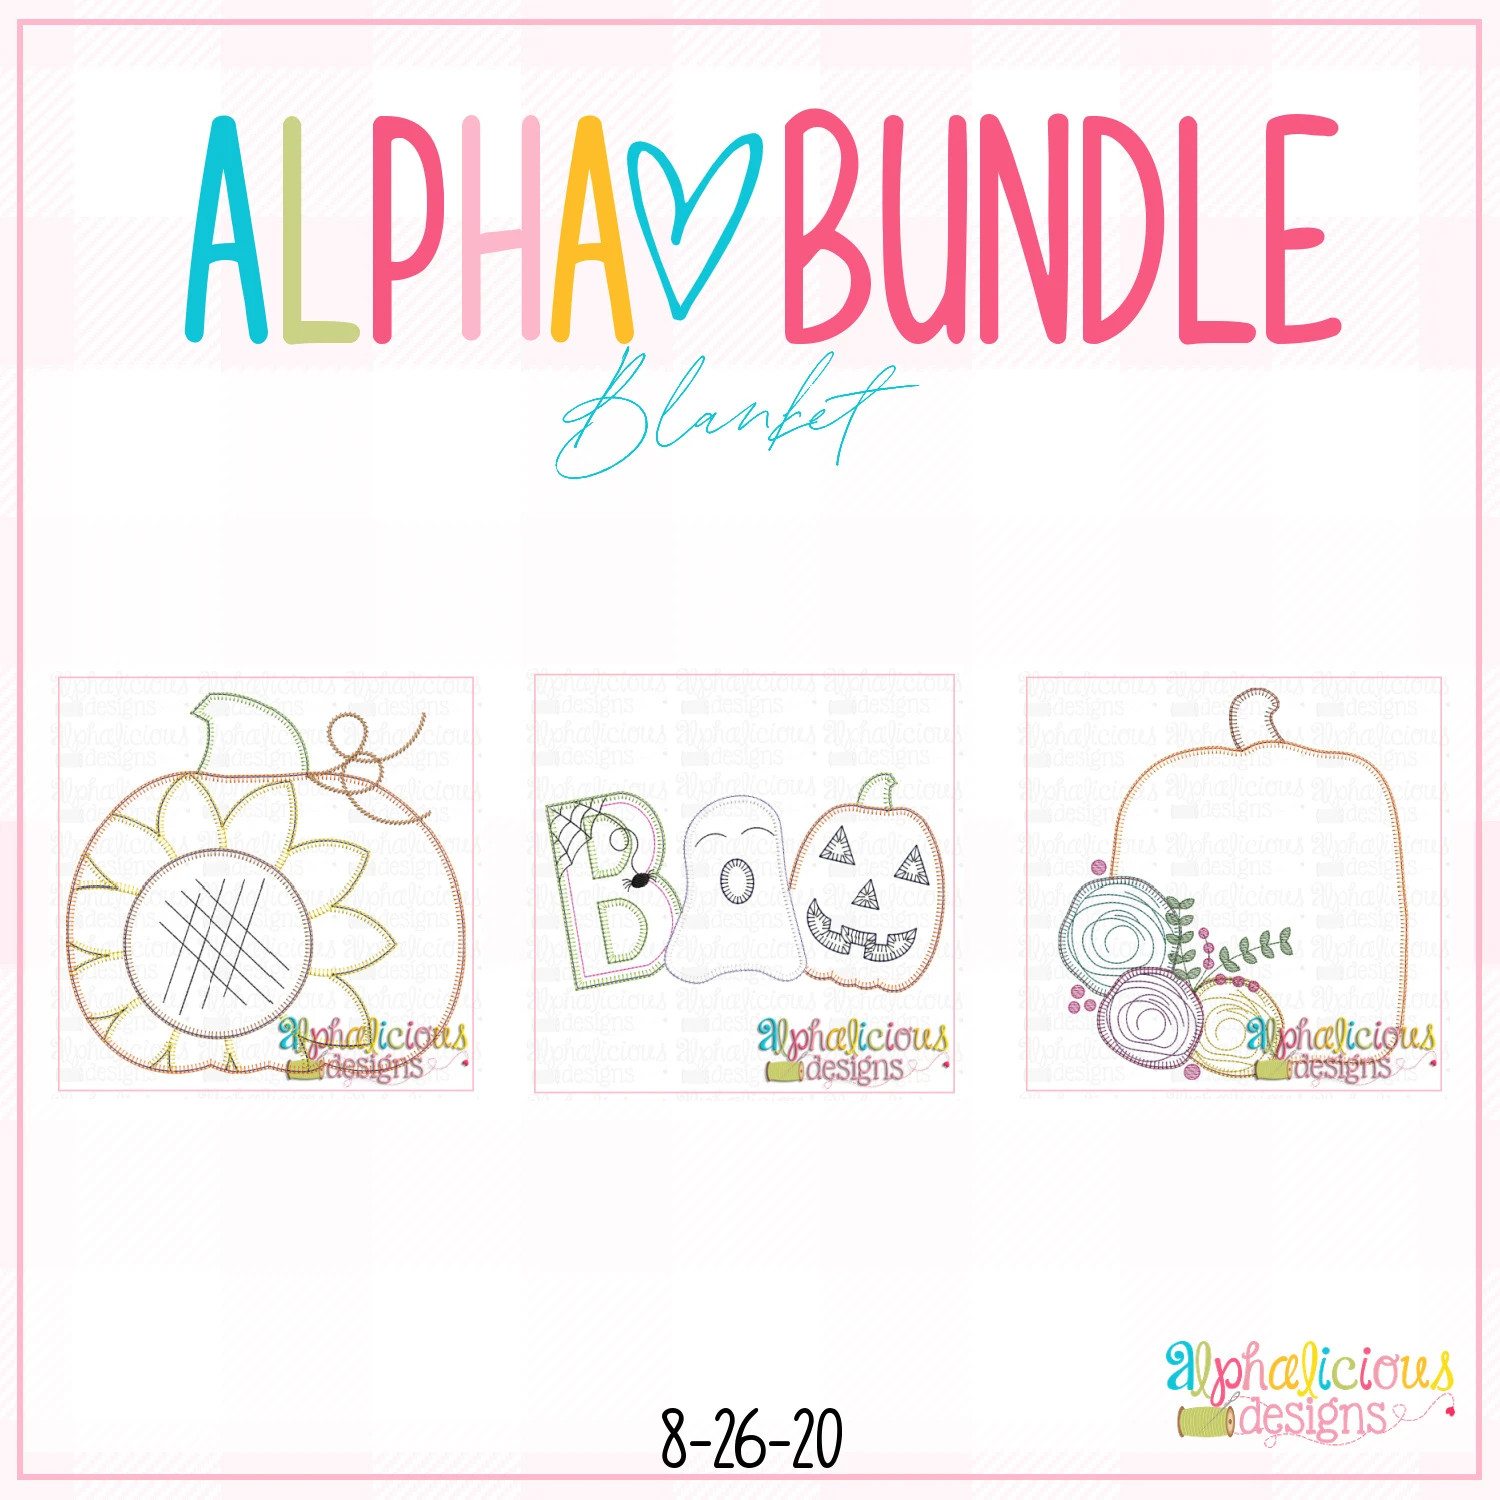 ALPHA BUNDLE-8/26/20 Release-Blanket Stitch